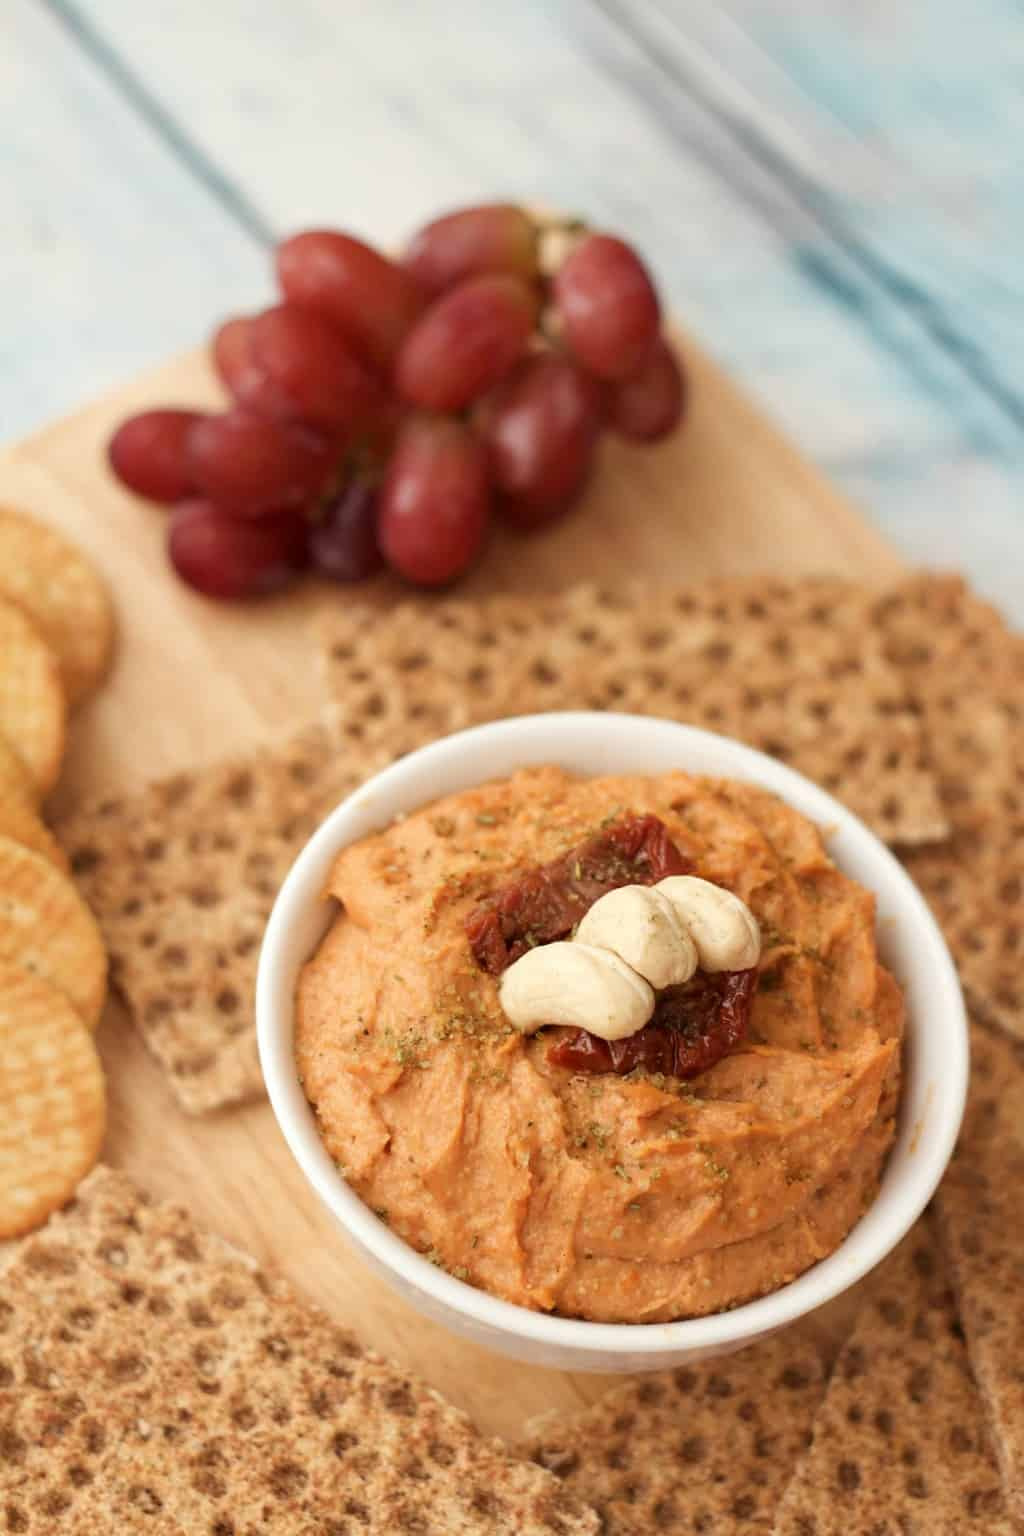 10-minute Sundried Tomato Cashew Cheese - ideal as a spread or dip! #vegan #lovingitvegan #dairyfree #snack